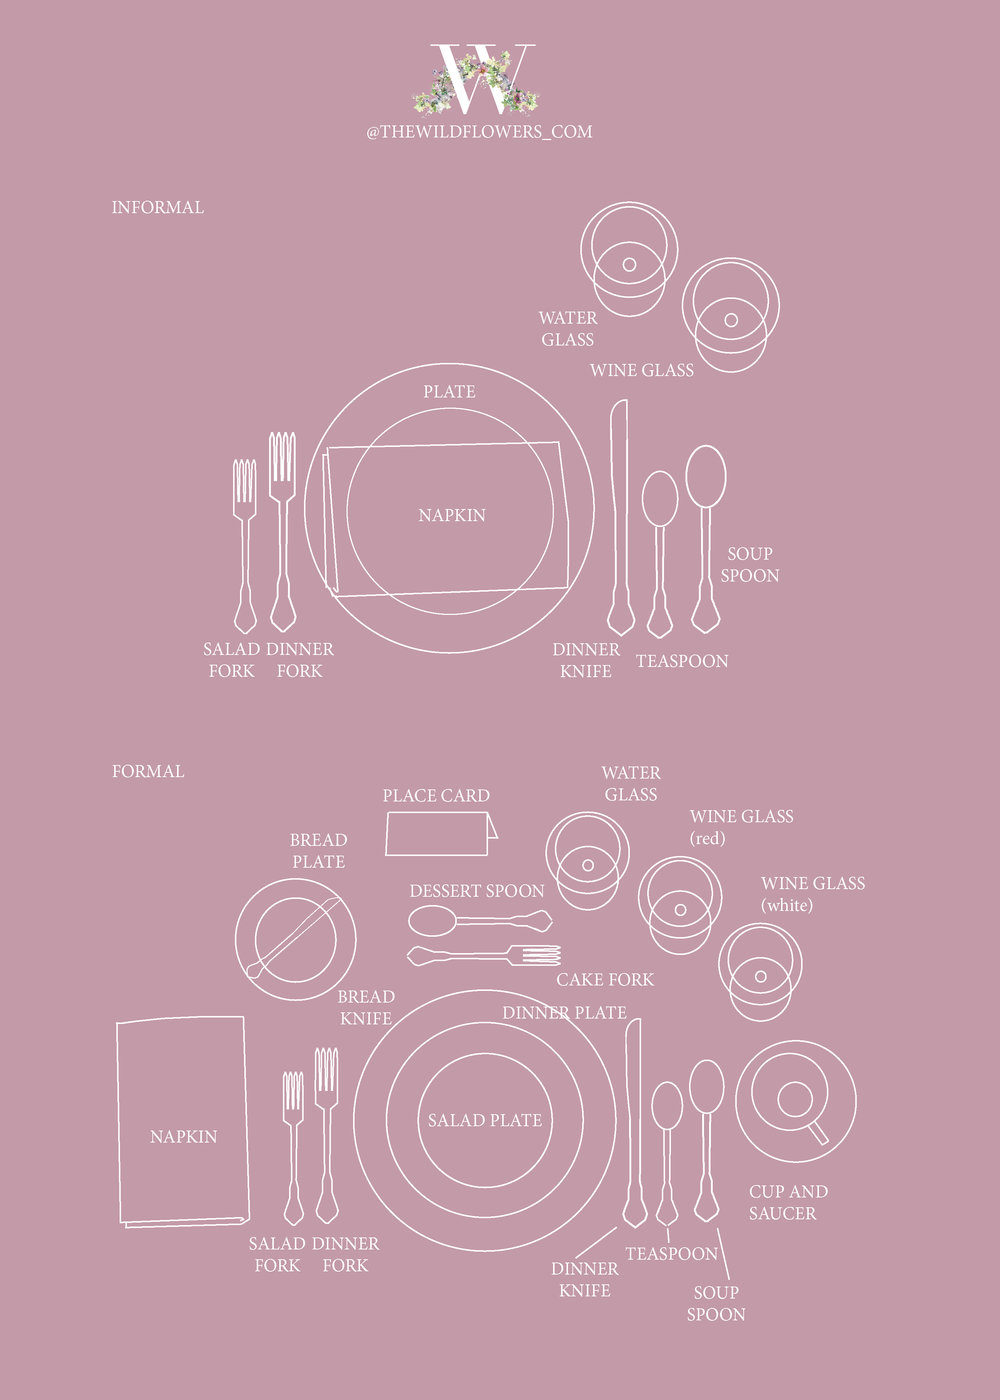 place-setting-etiquette-dallas-wedding-planner